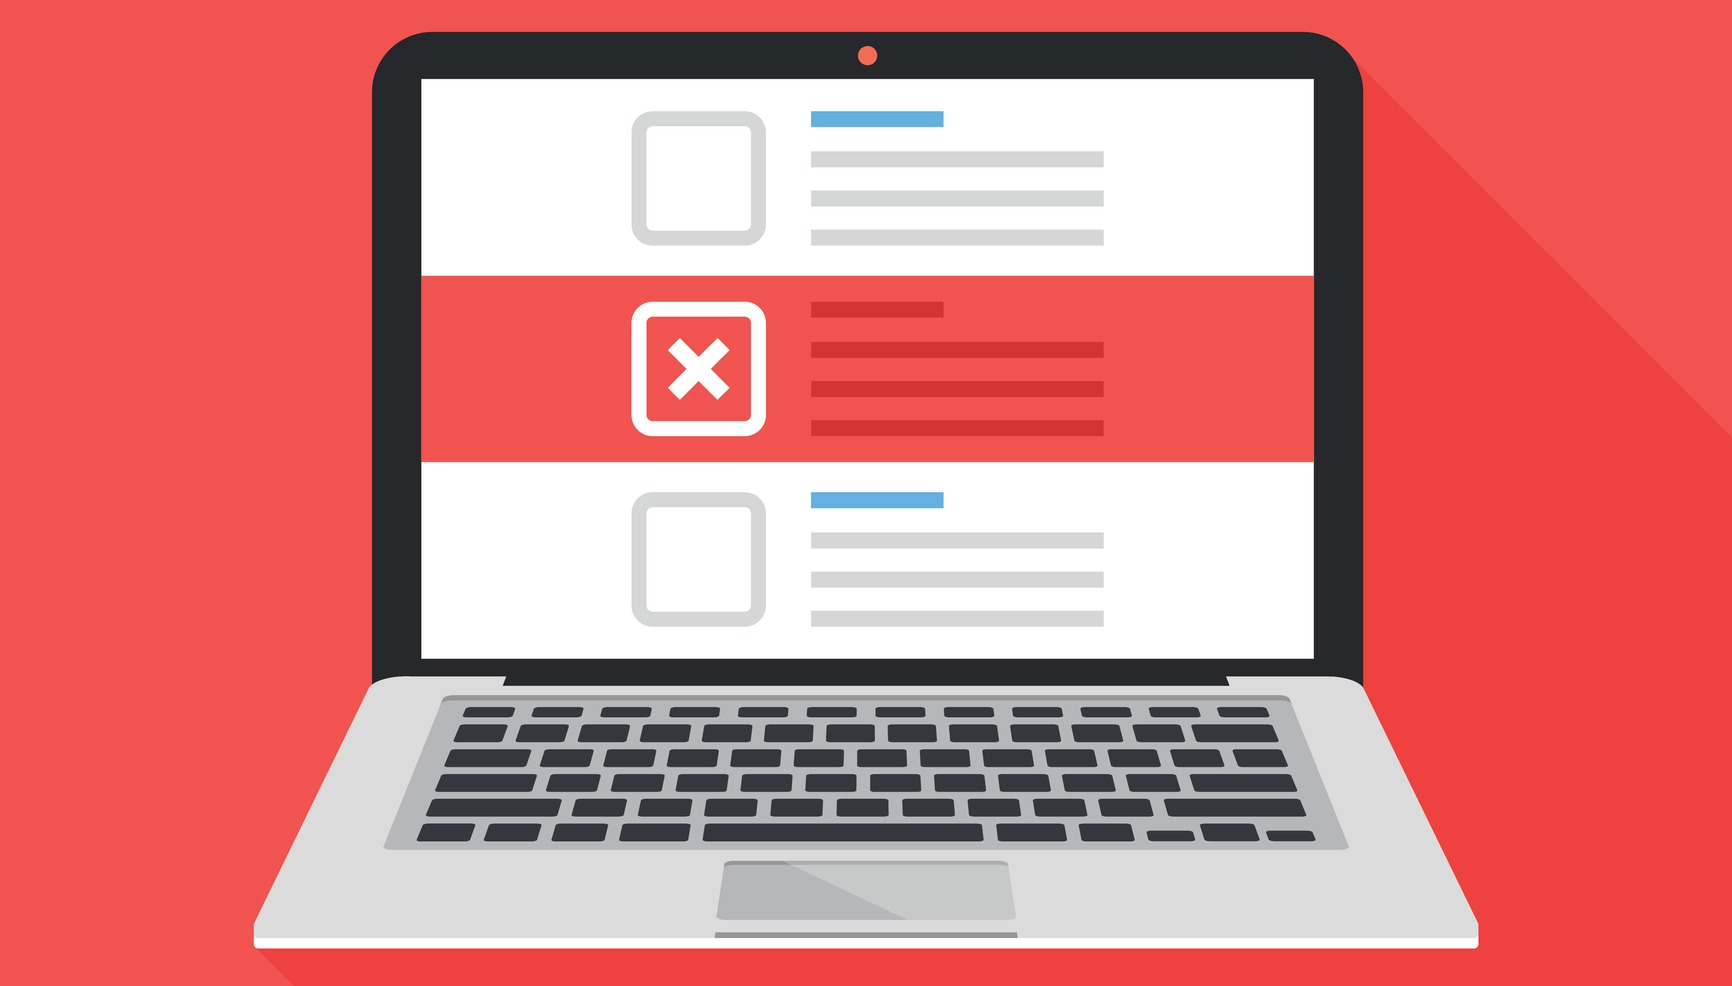 4 Common Website Mistakes and How to Fix Them